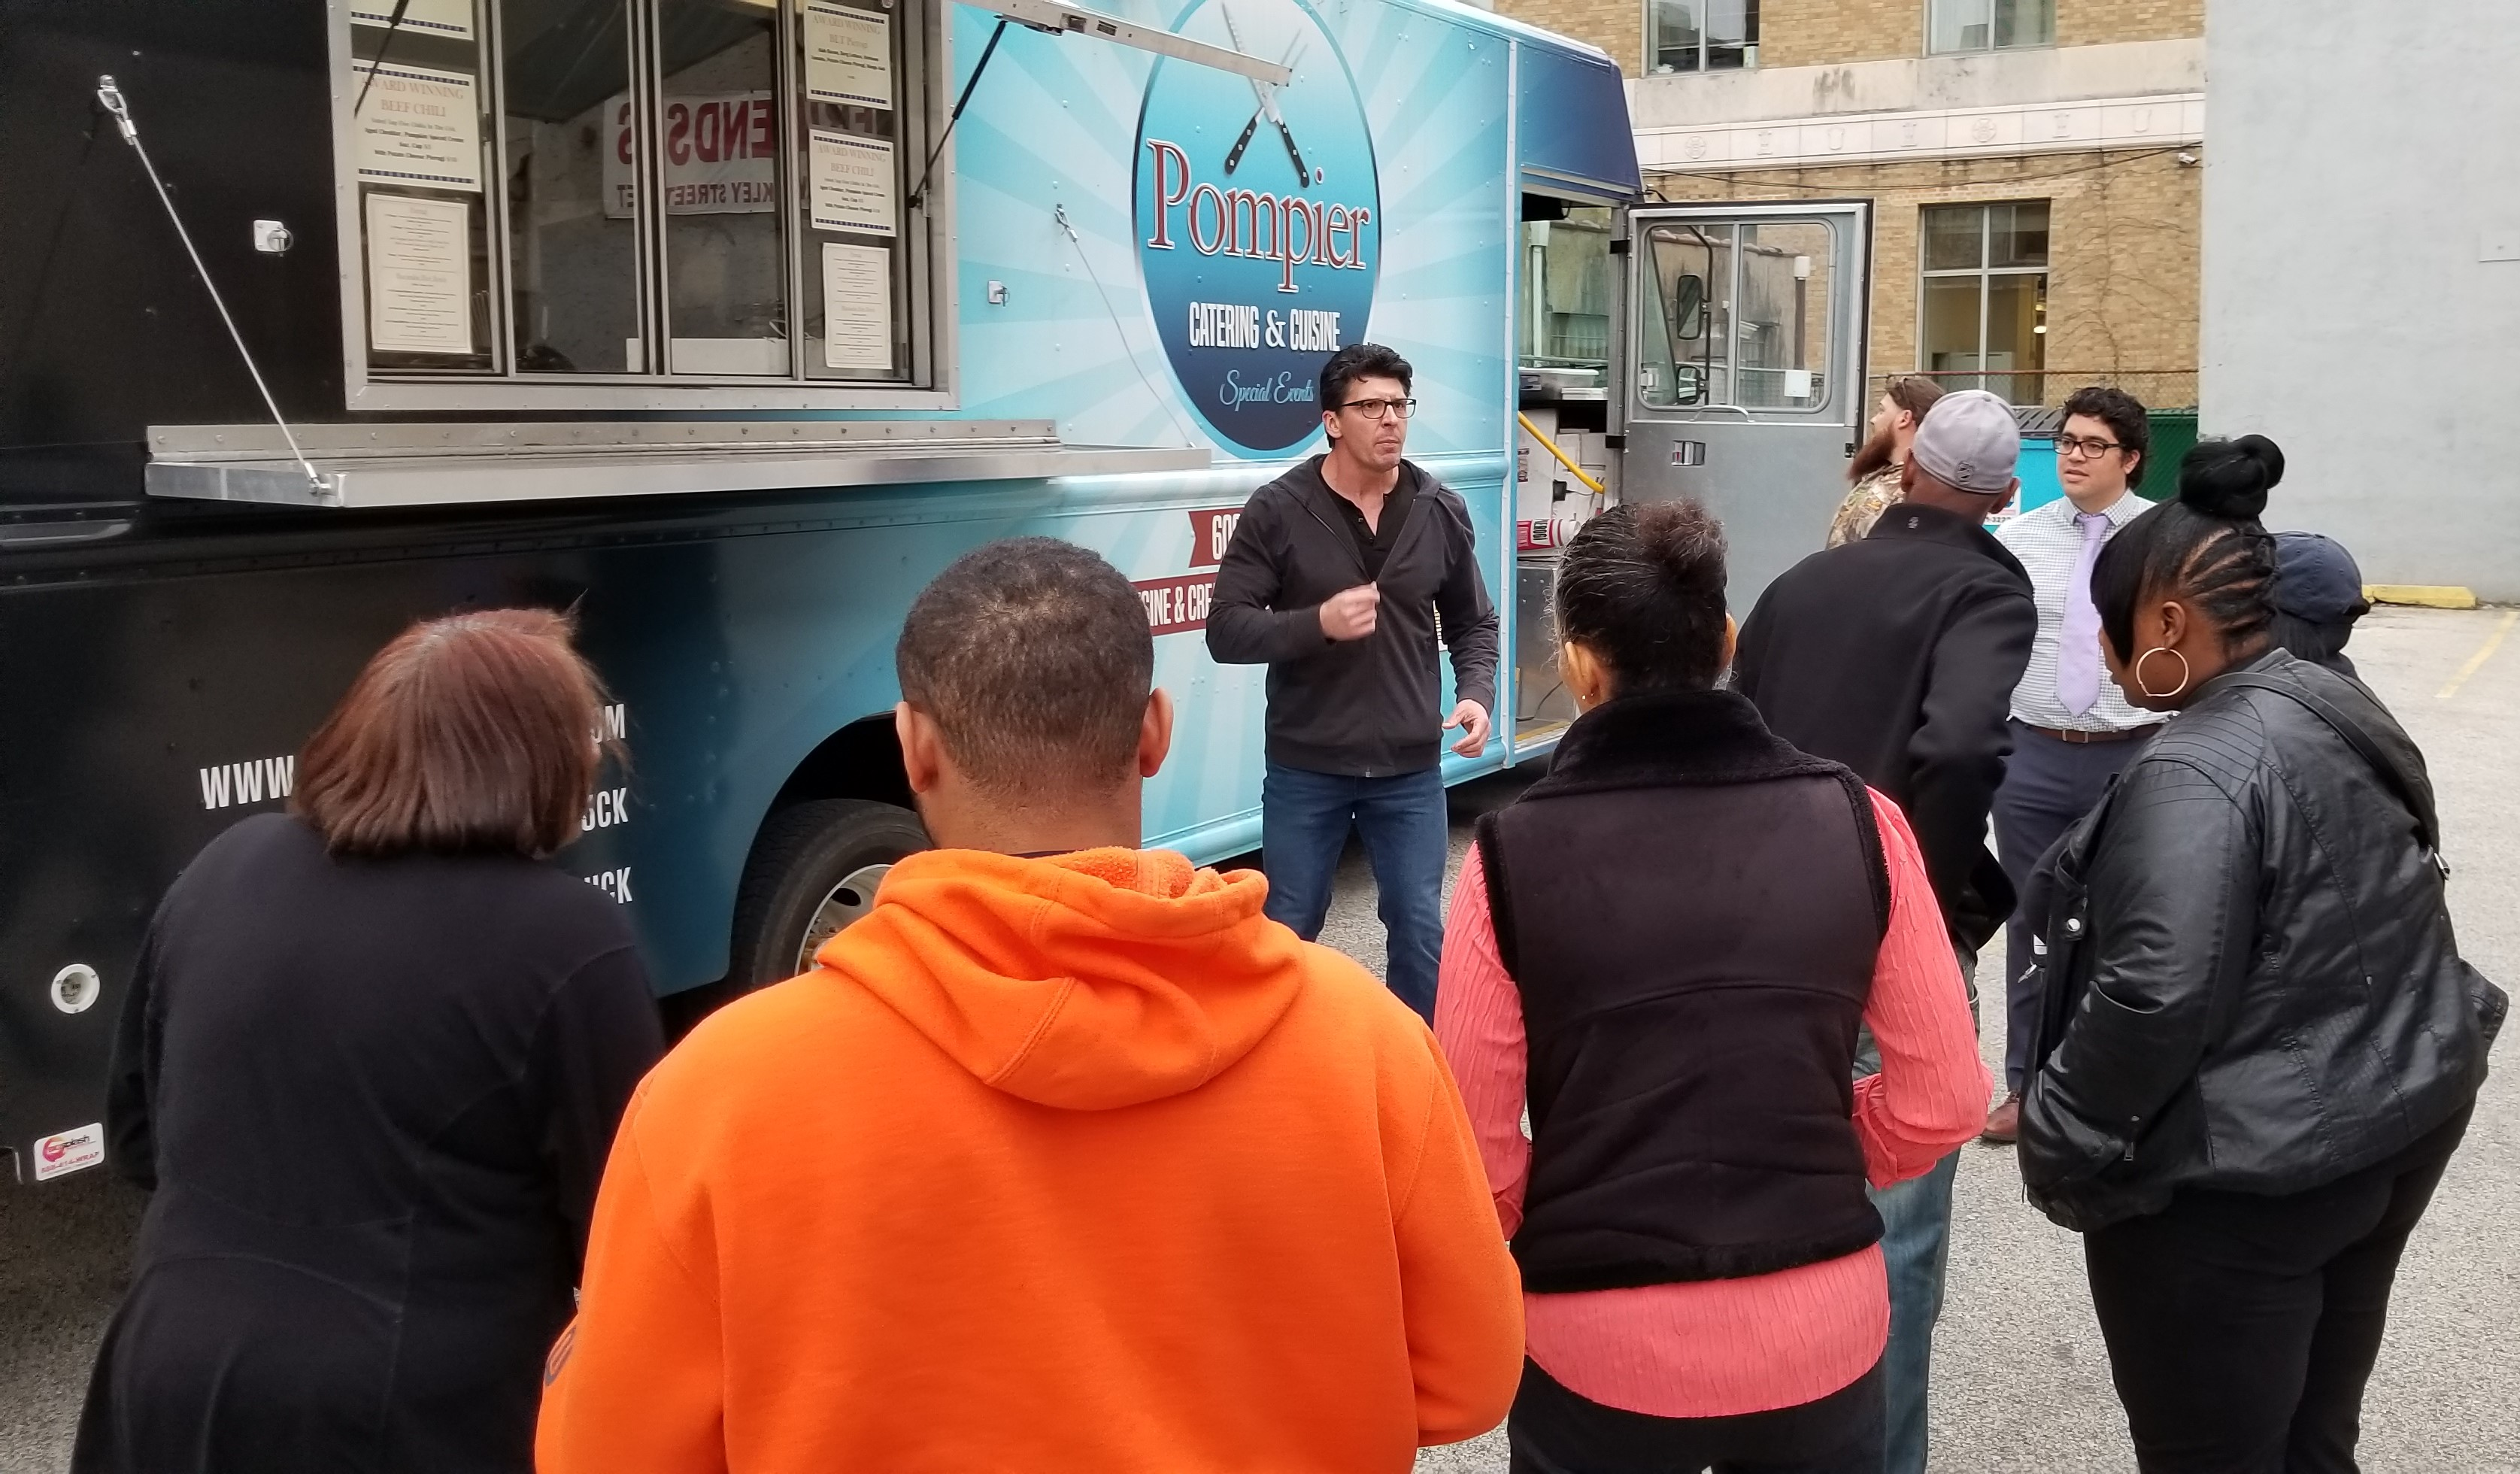 Food Trucking 101 - The Drive Down the Path to Success Continues